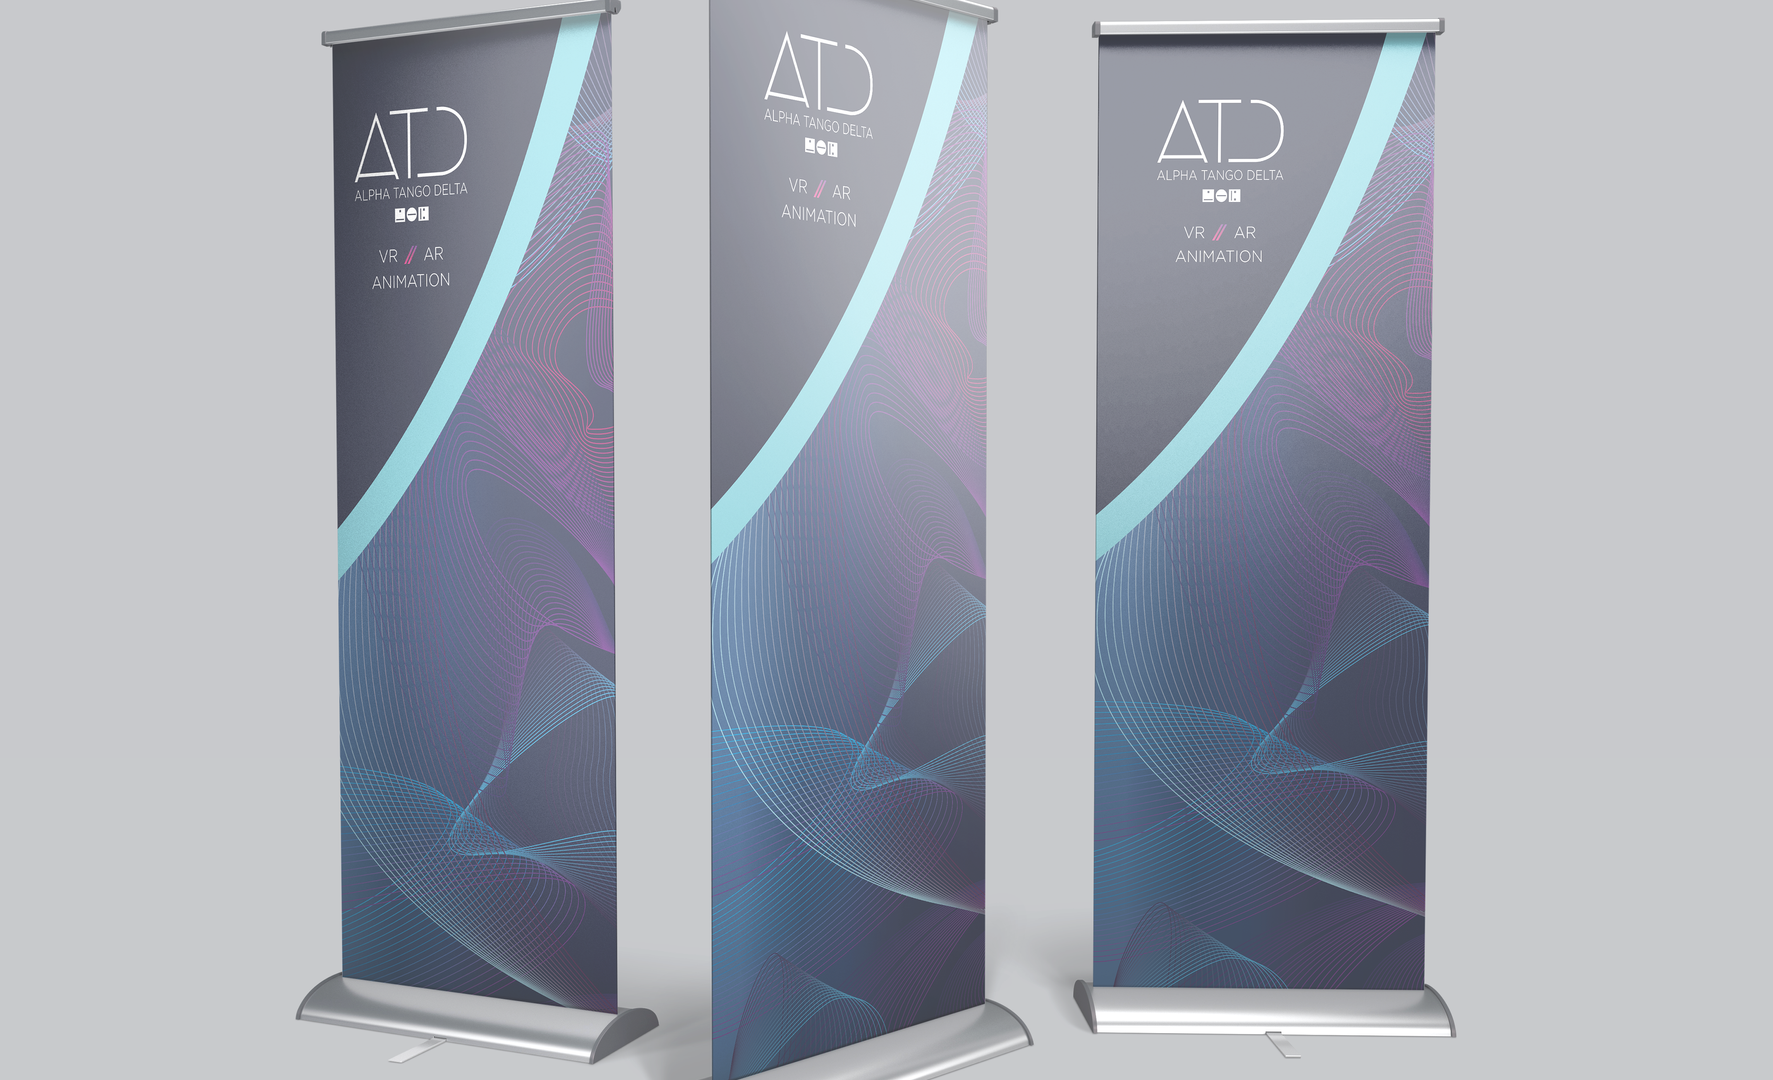 atd banner 1.png